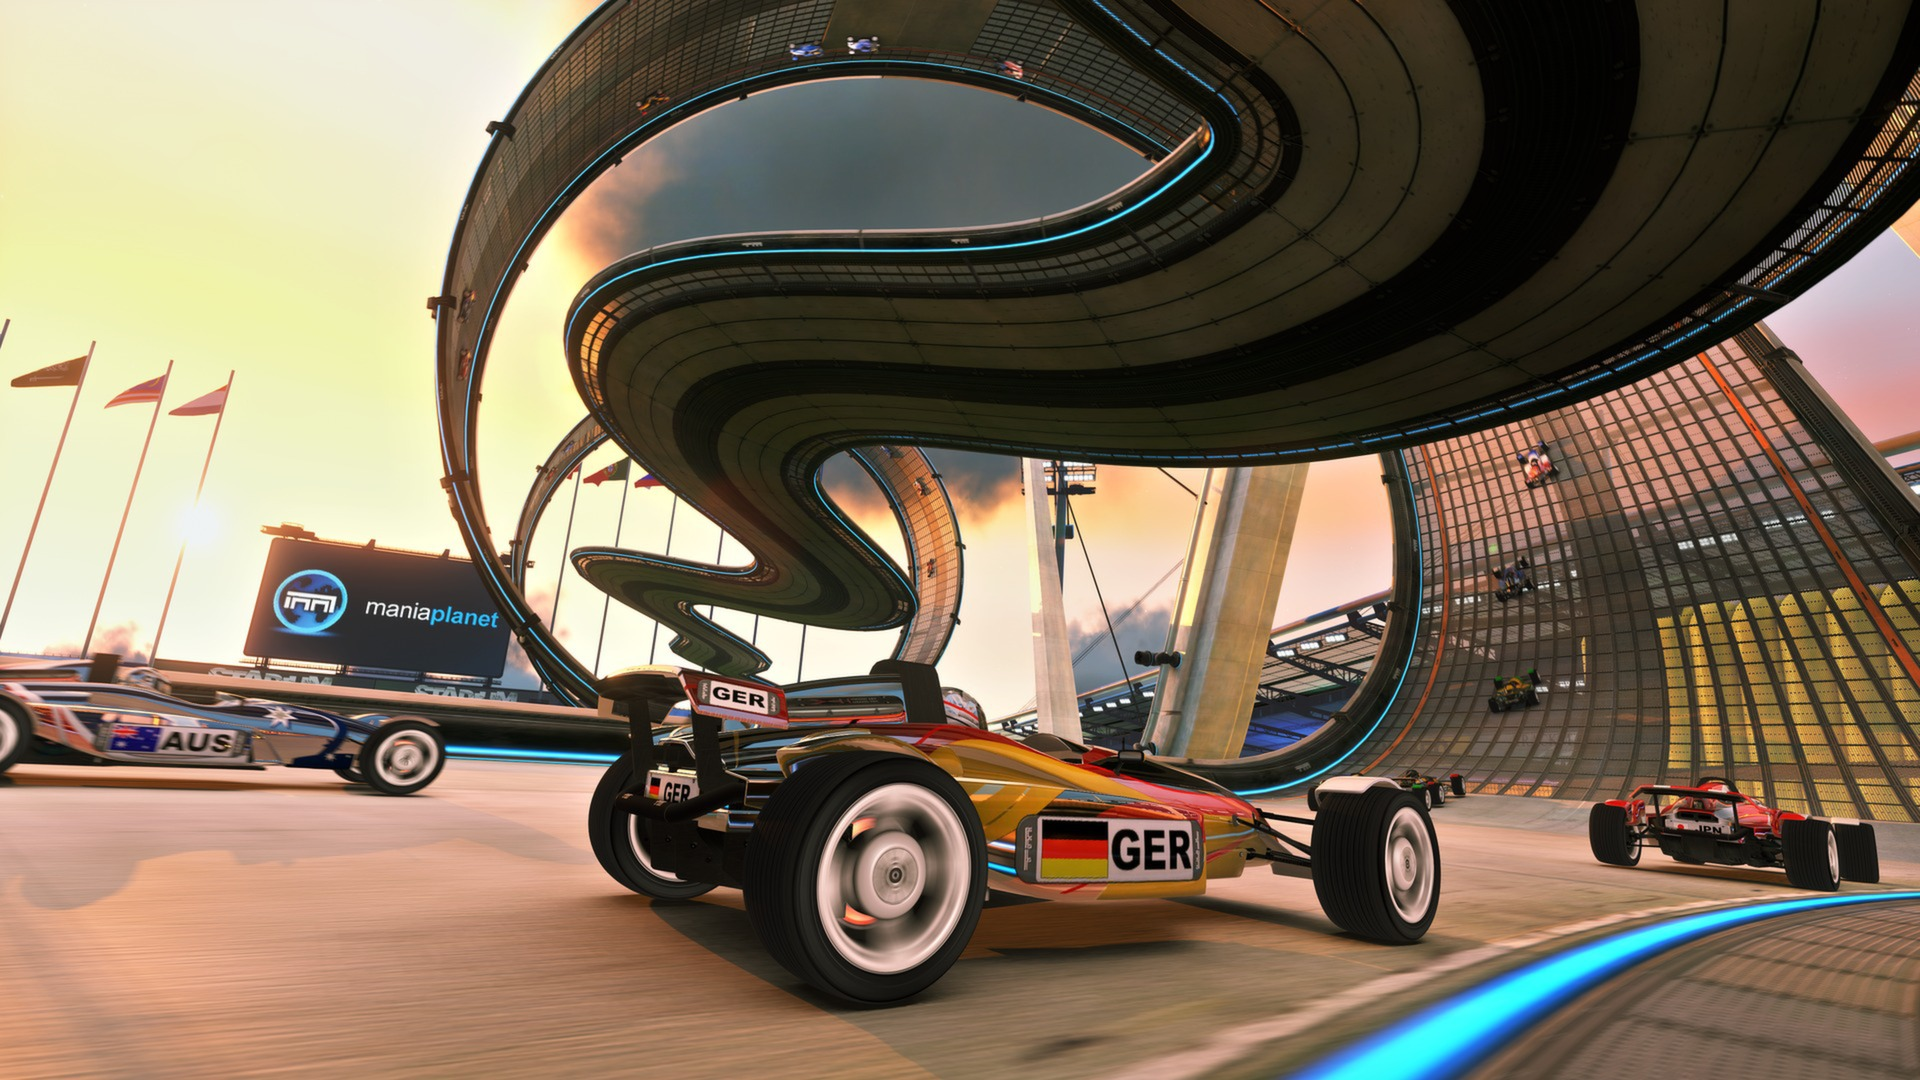 trackmania 2 stadium in game